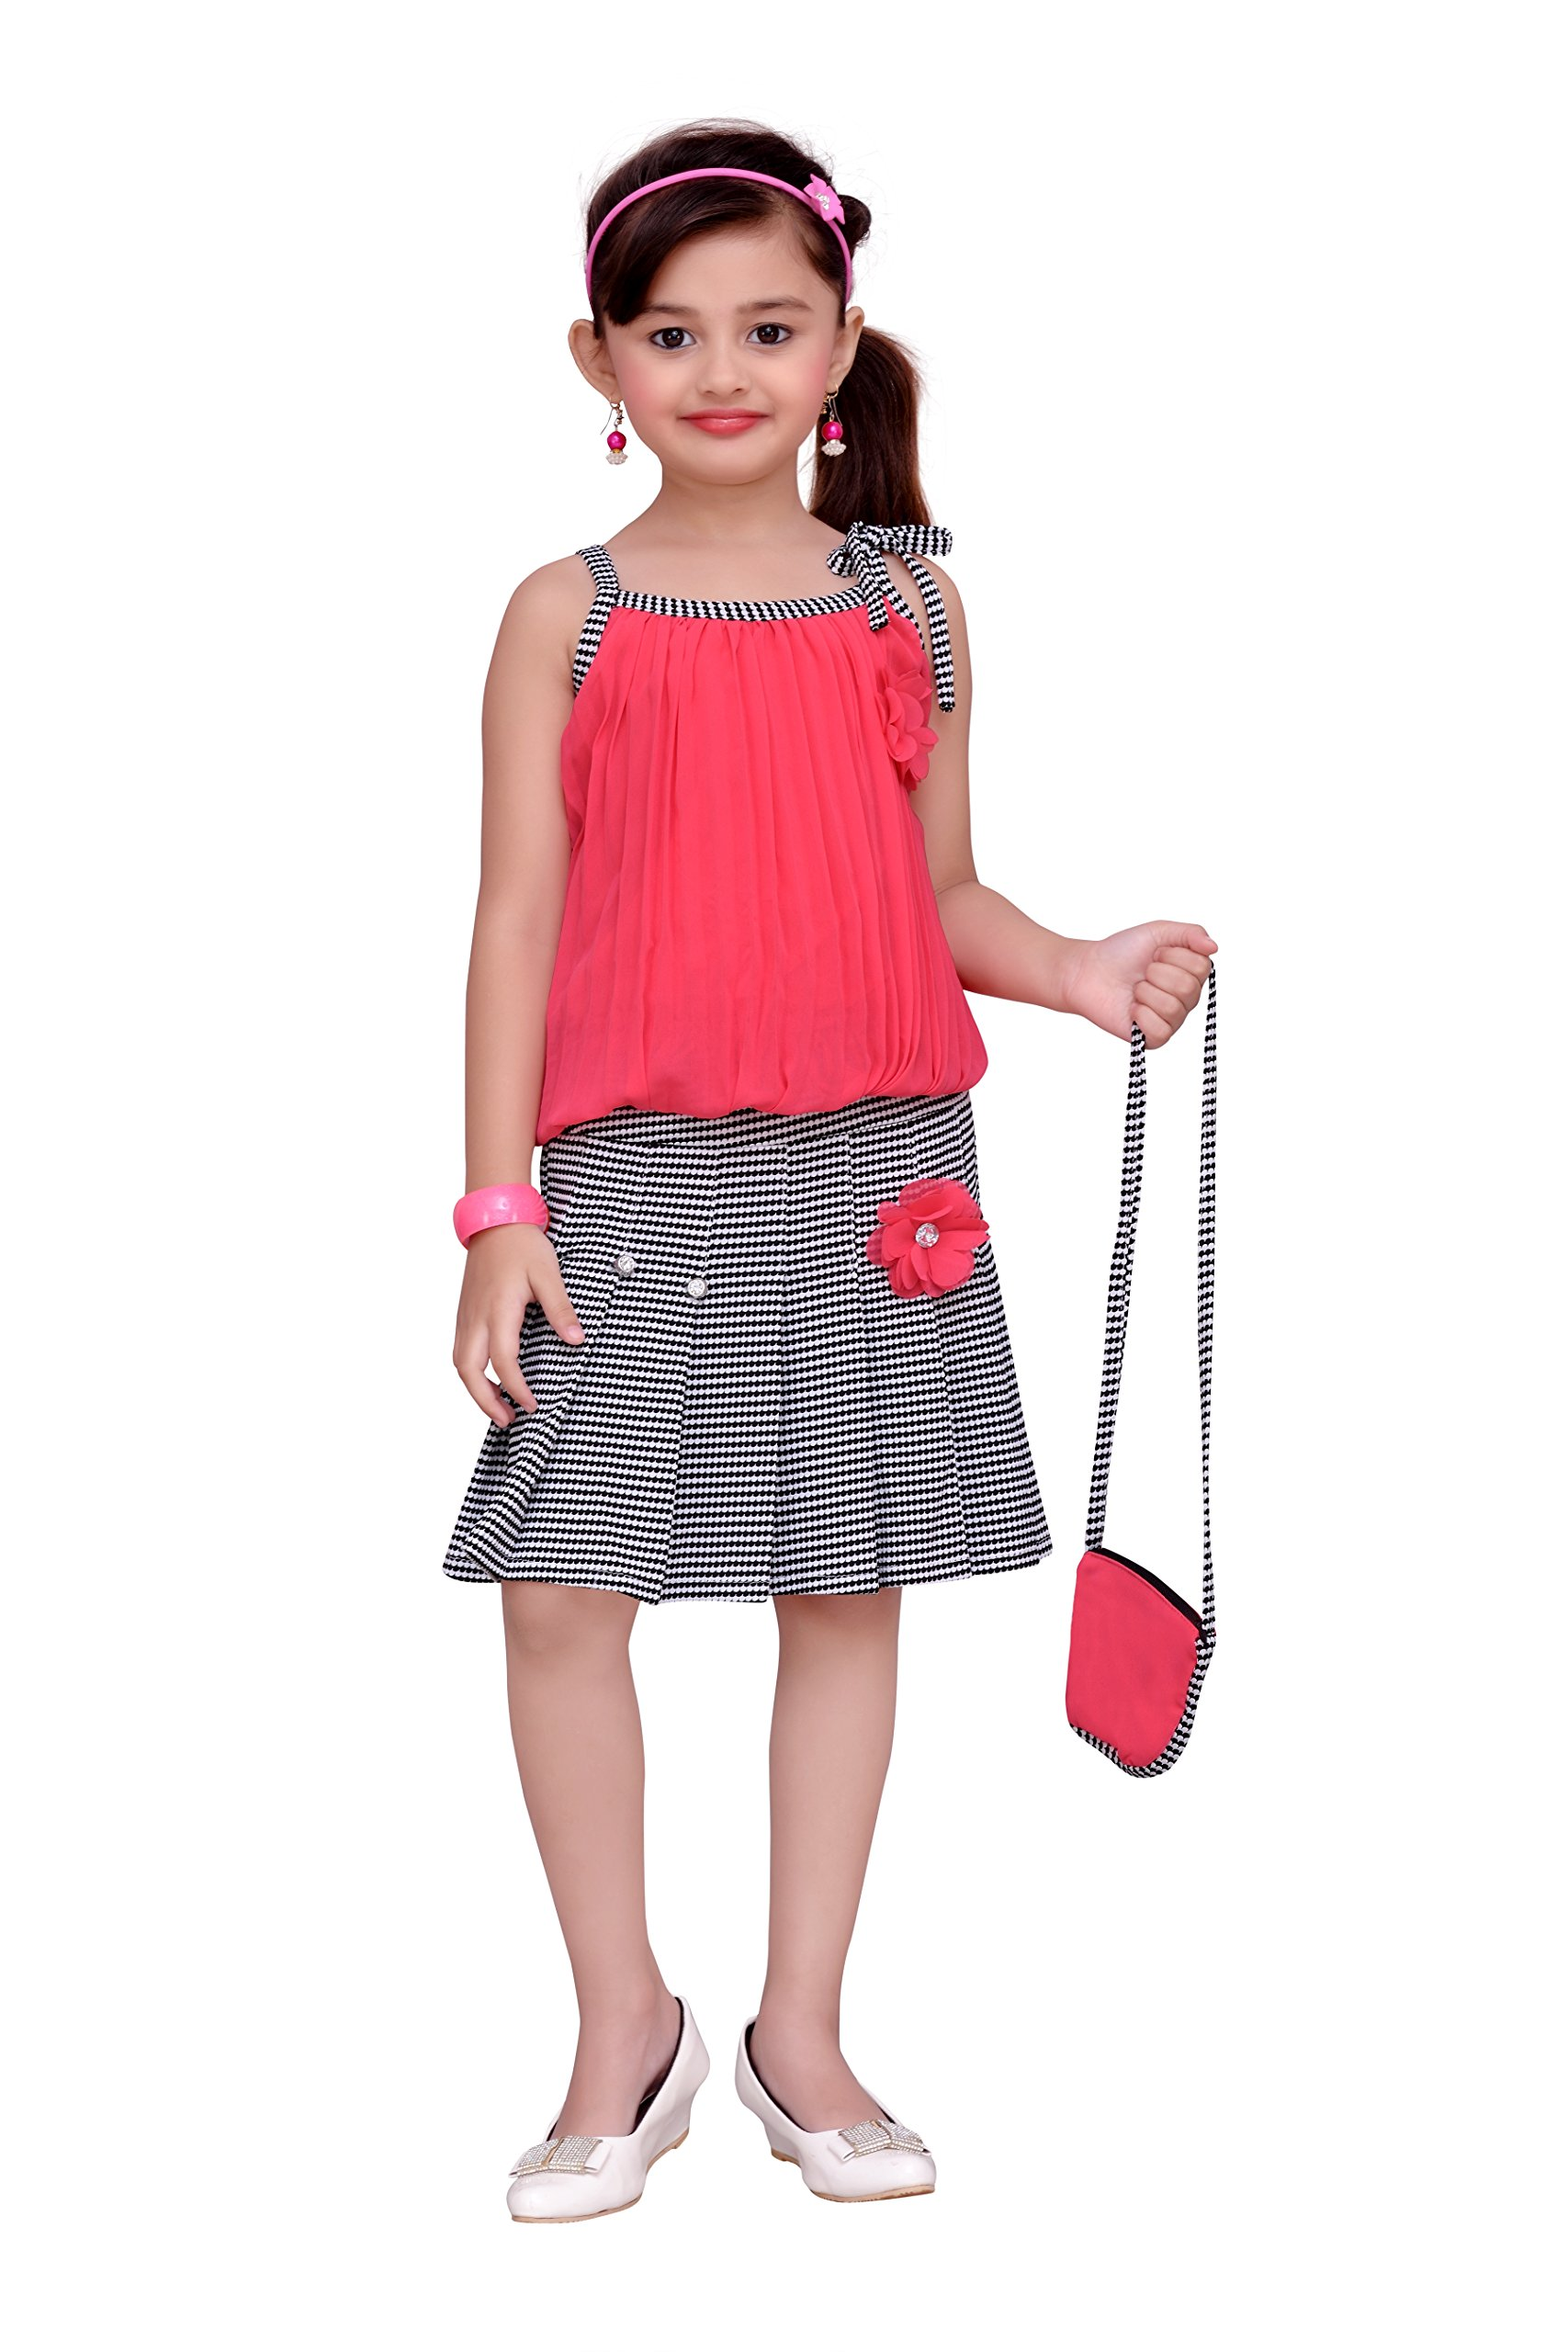 ADIVA Girl's Indian Party Wear Skirt Top Dress Clothing Set for Kids (G-1122-RANI-40)